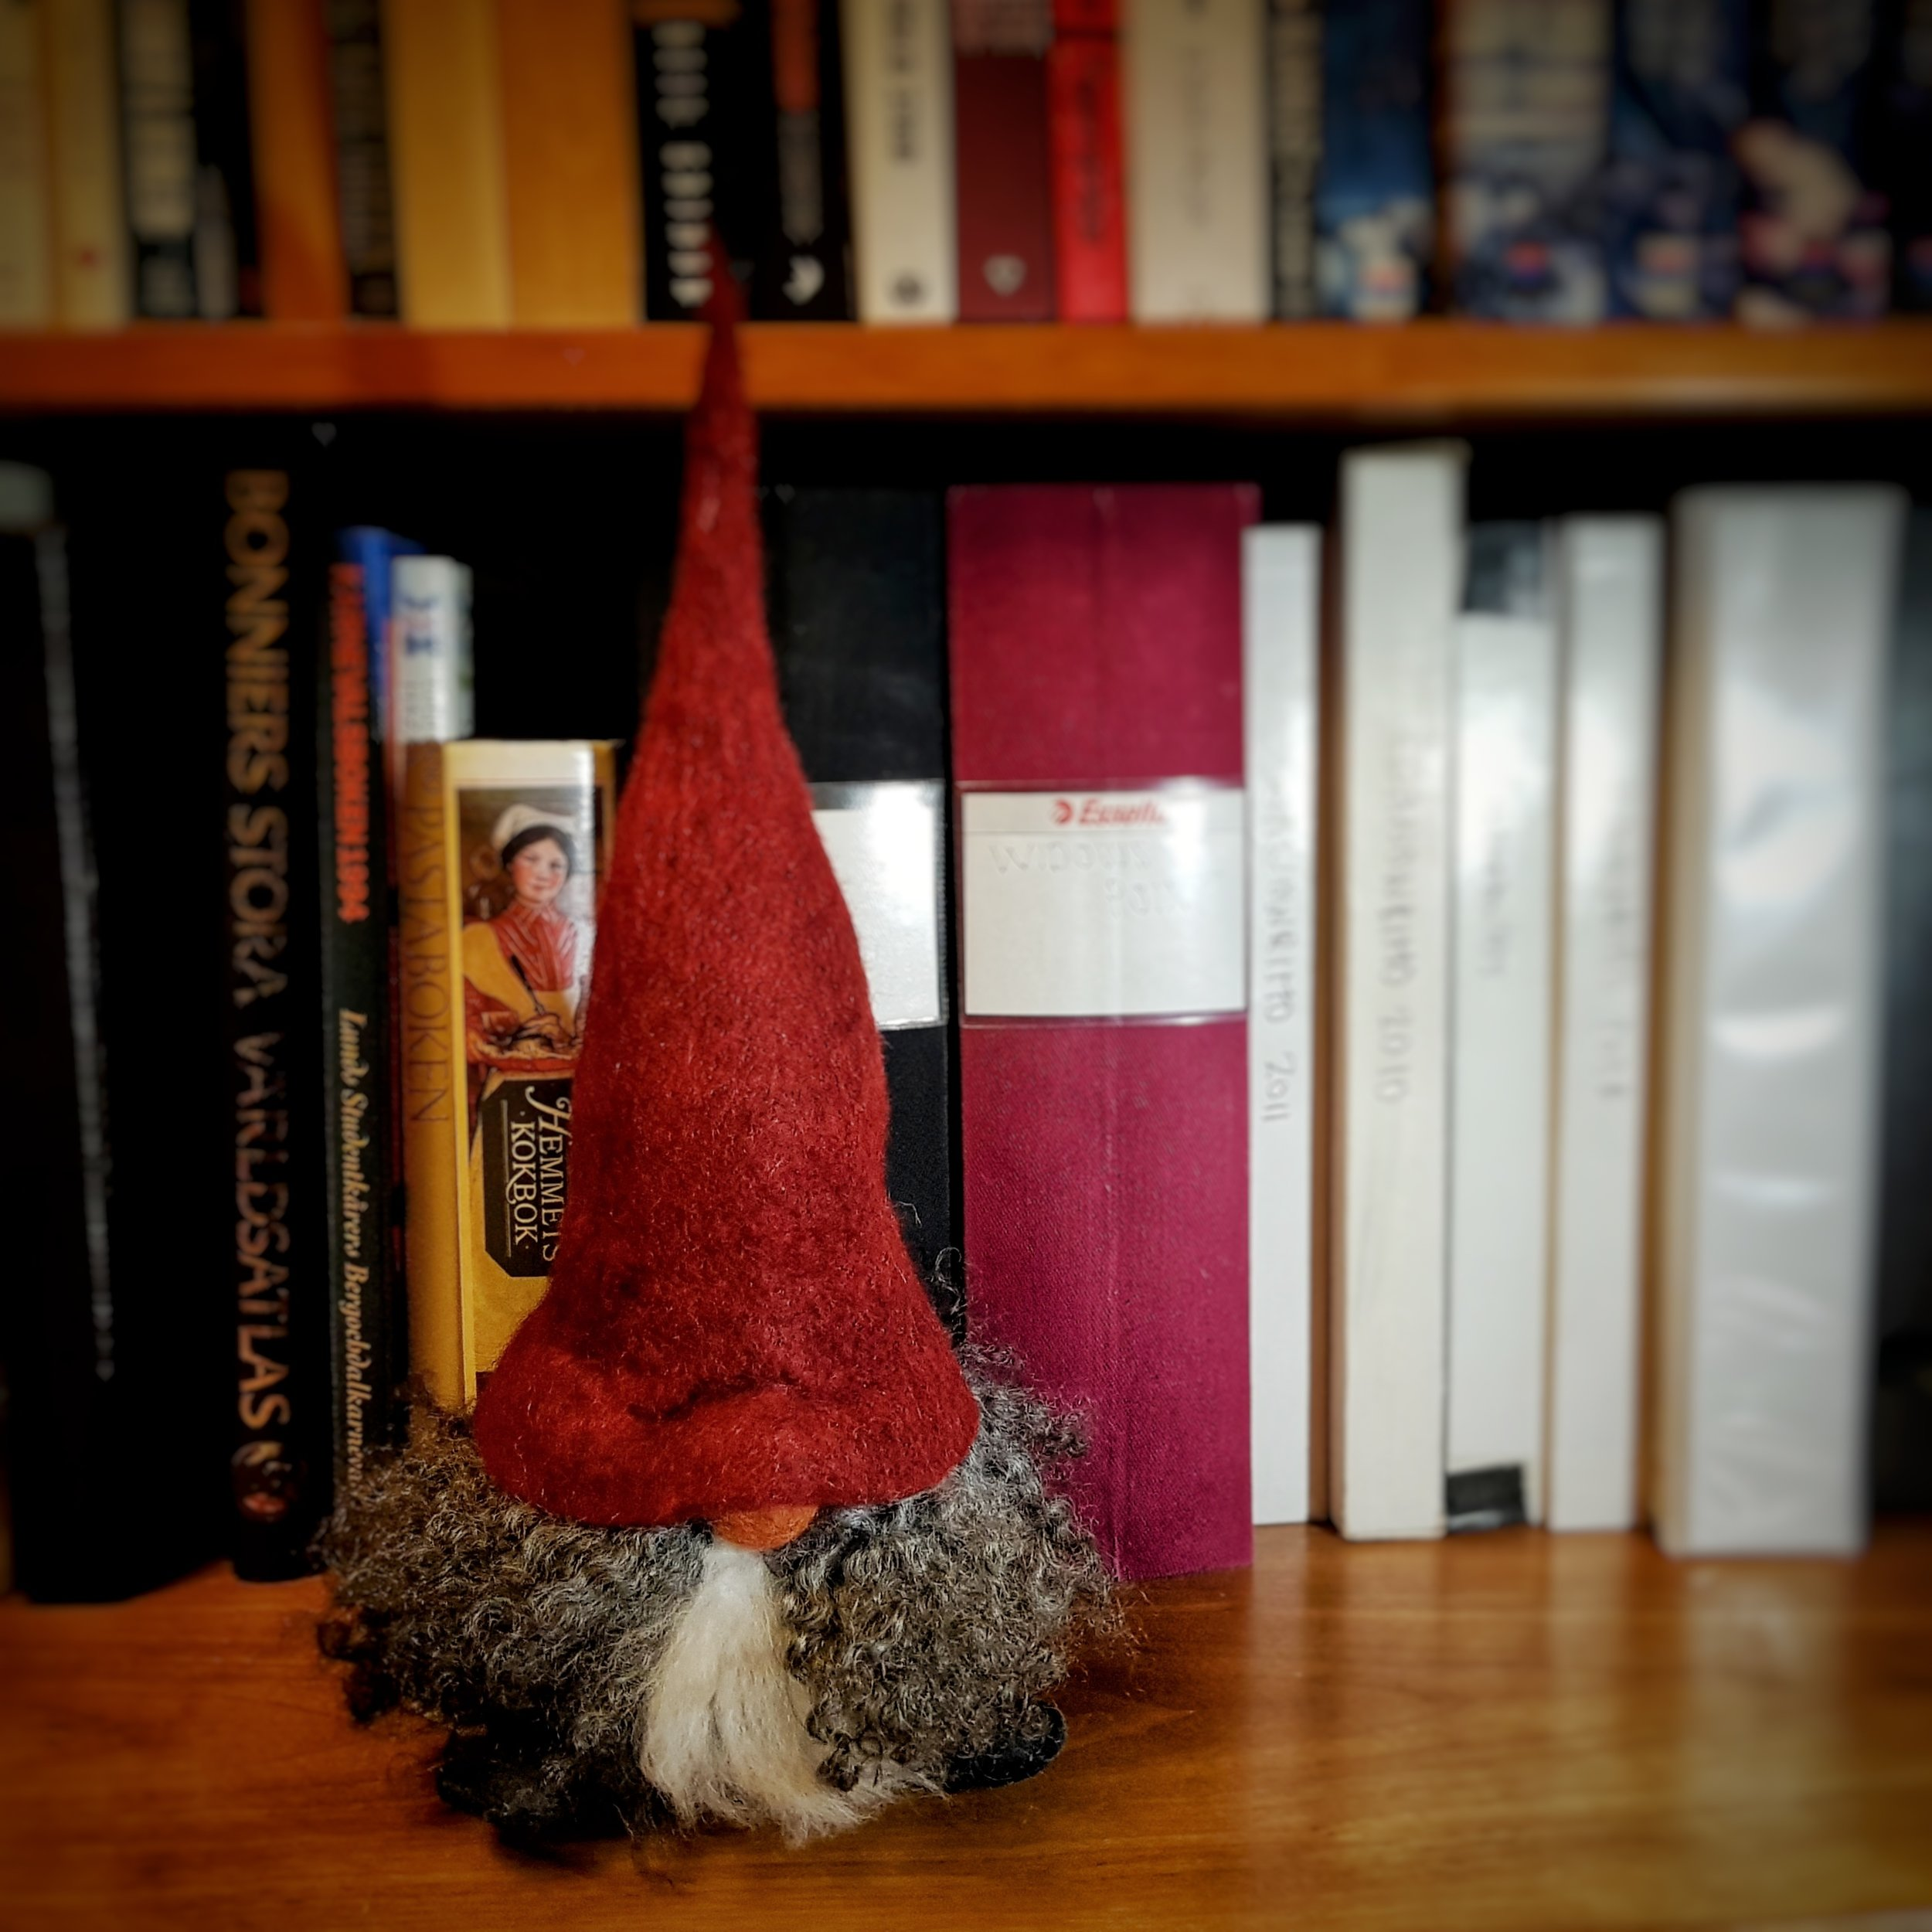 Day 20: January 20 - Gnome